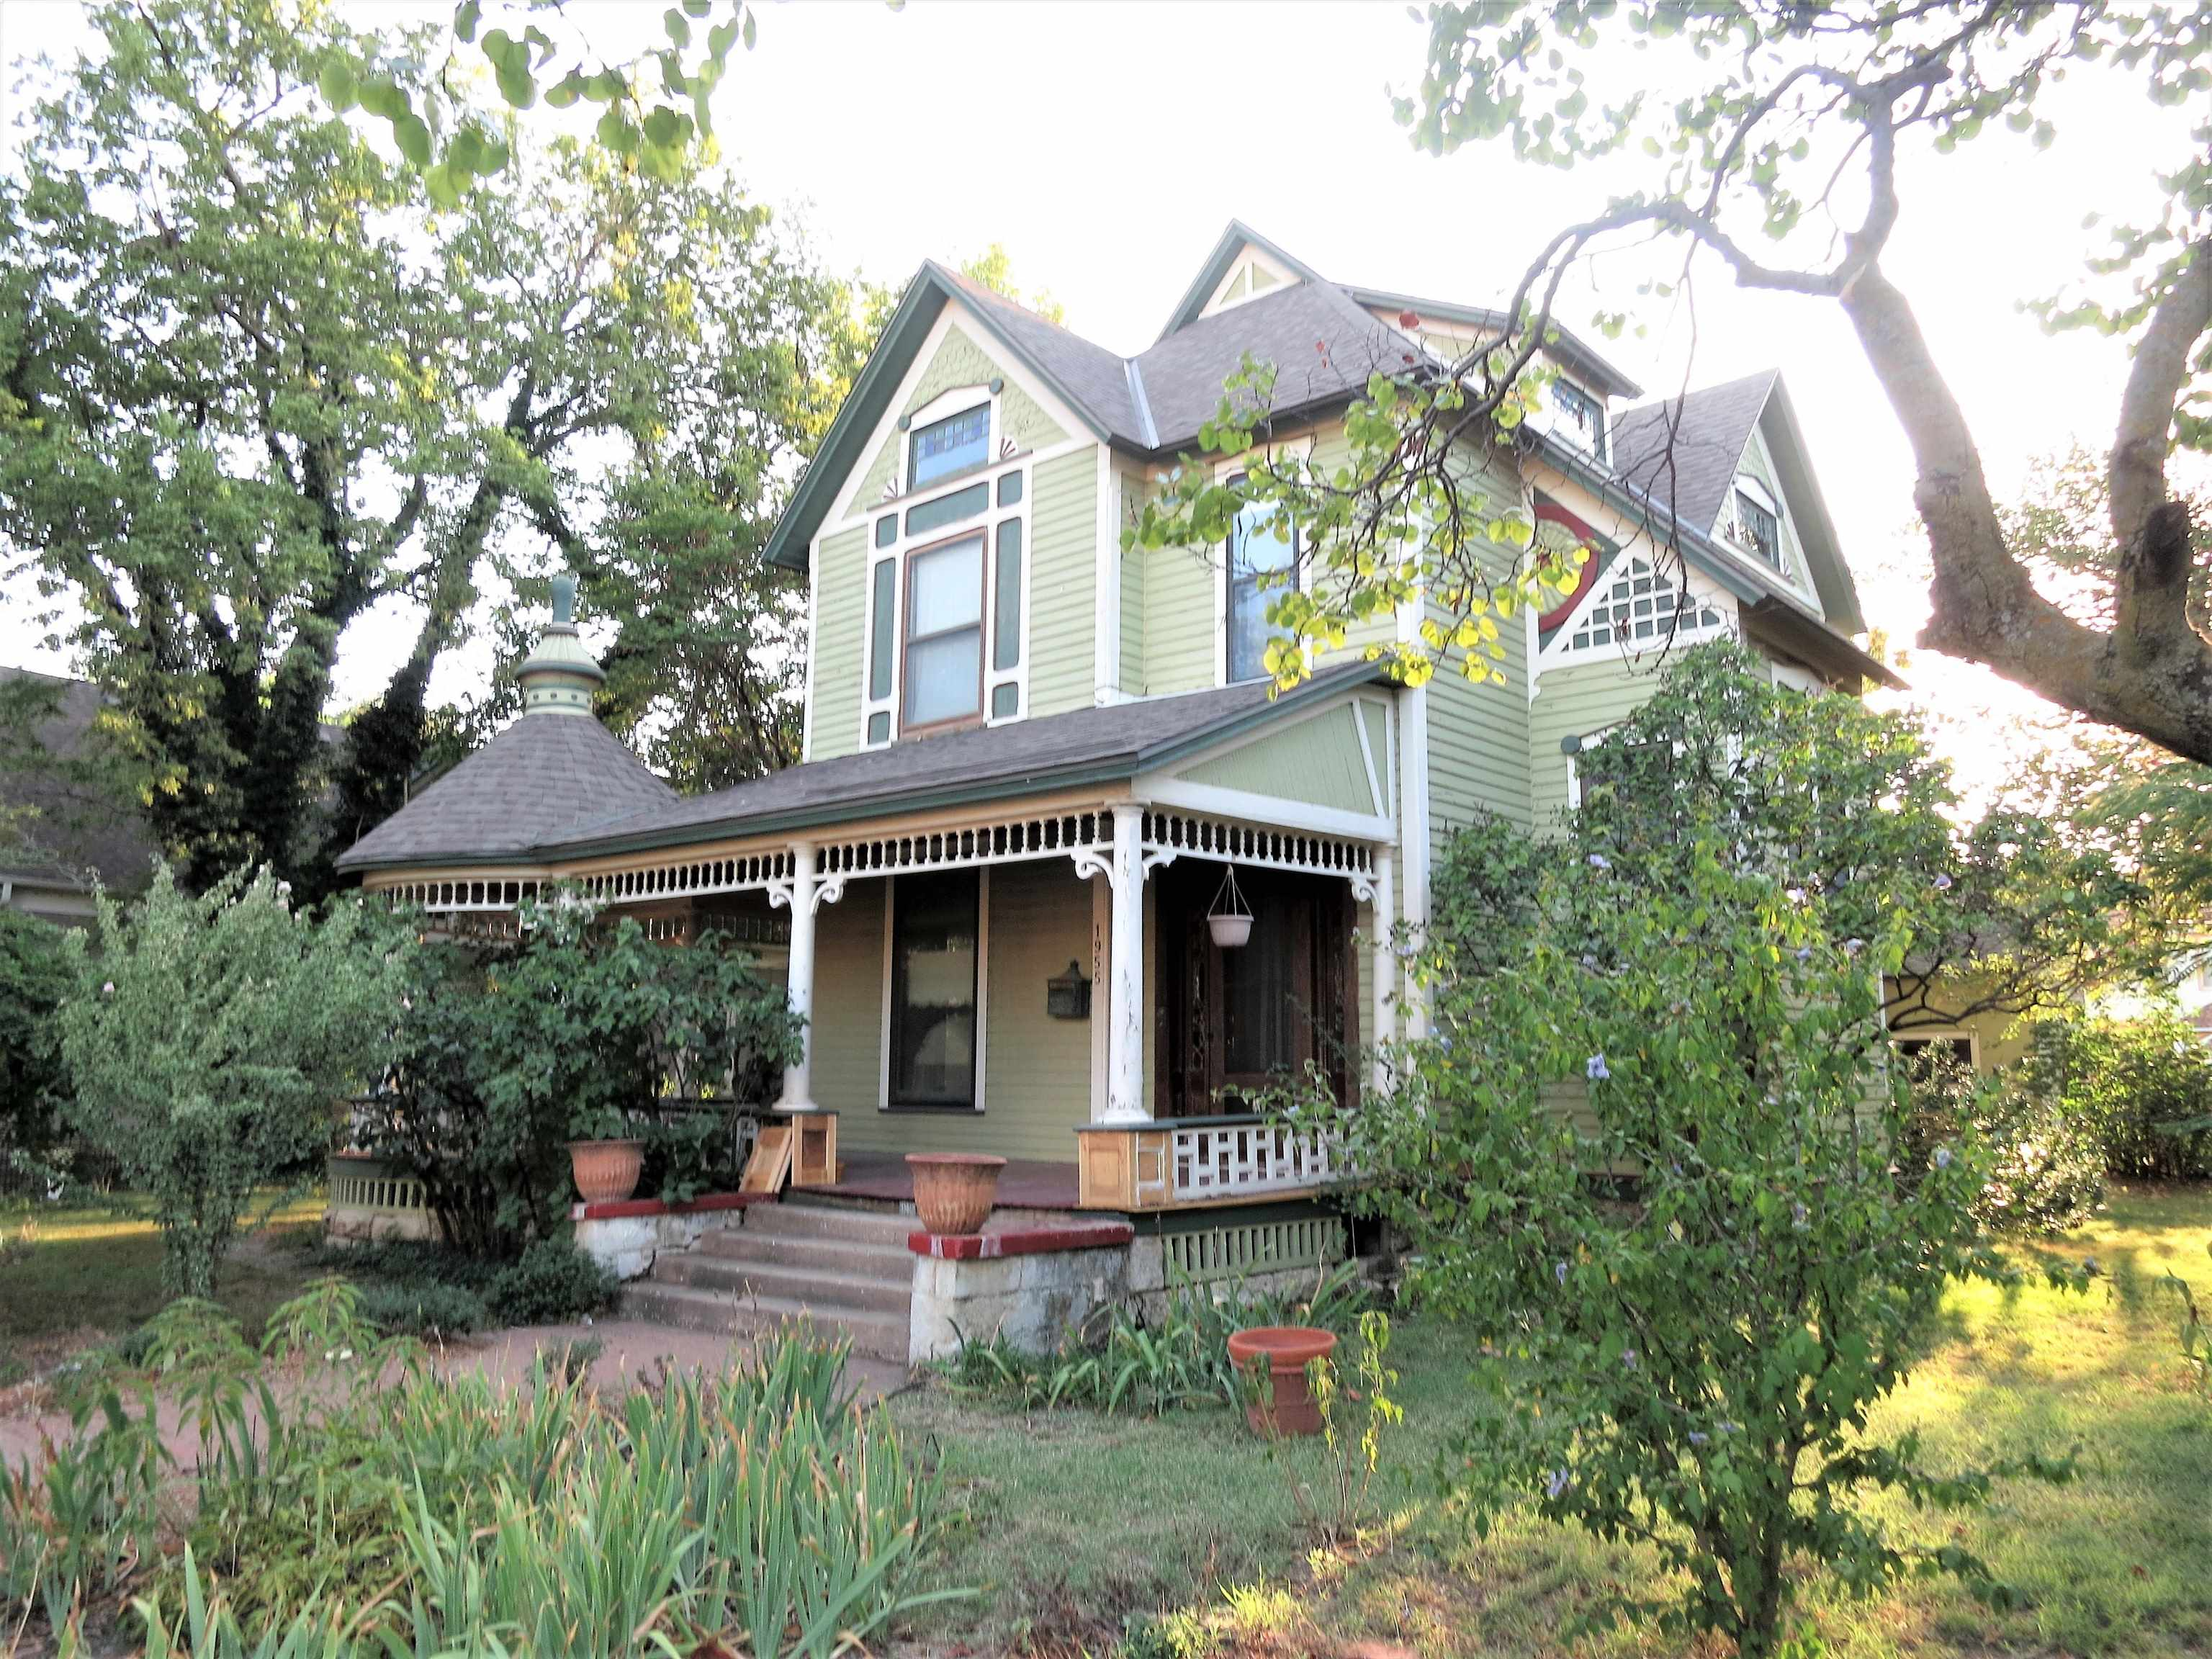 This Queen Anne style home with amazing architectural details is listed on the Wichita register as t